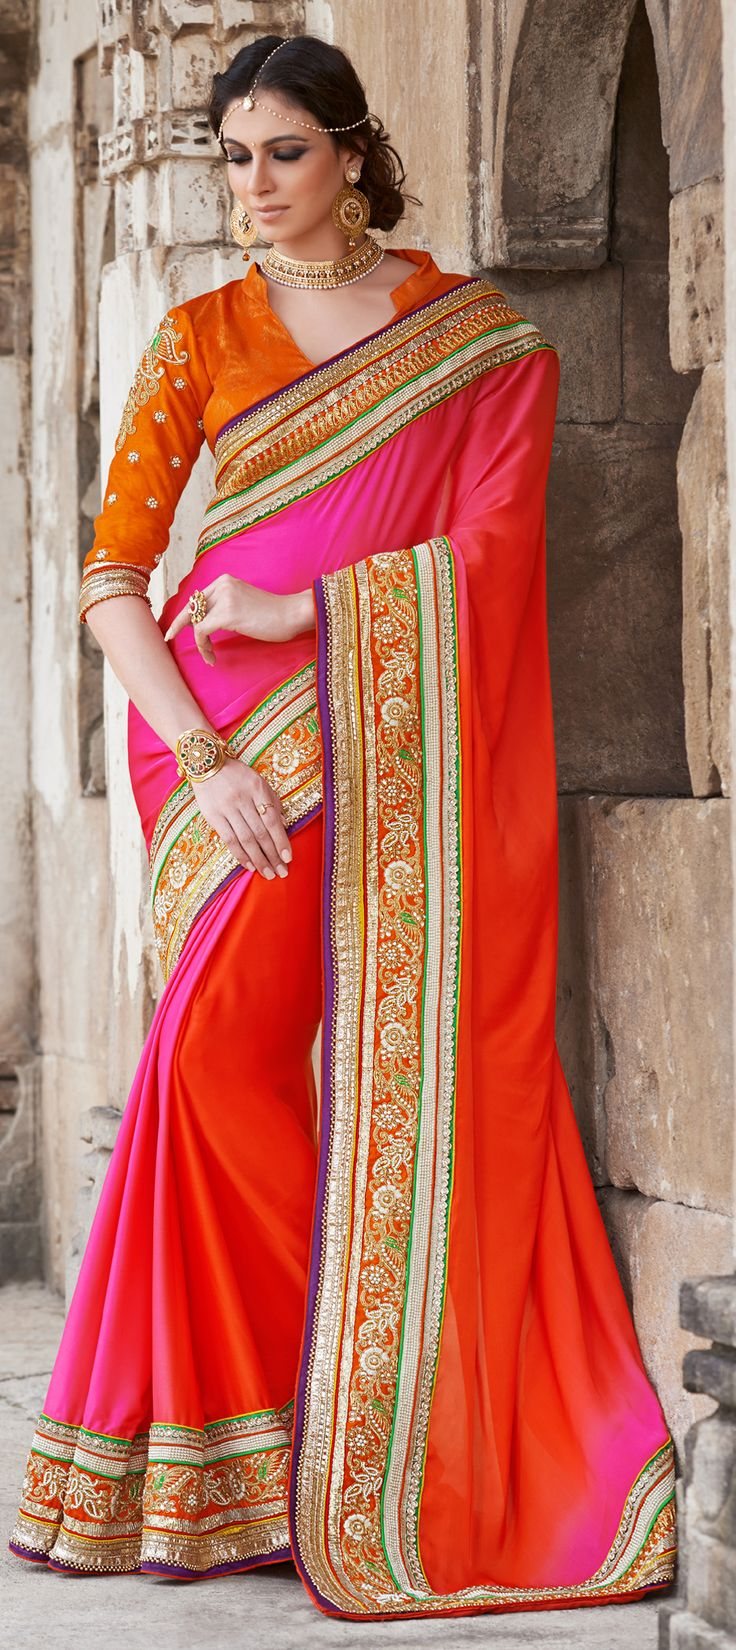 151321: REDs and ORANGEs make the new Indian bridal wear. check out this #saree collection for weddings and parties here. #IndianFashion #neon #WeddingCouture #BridalWear #Partywear #Sale #OnlineShopping #Goddess #bridetobe